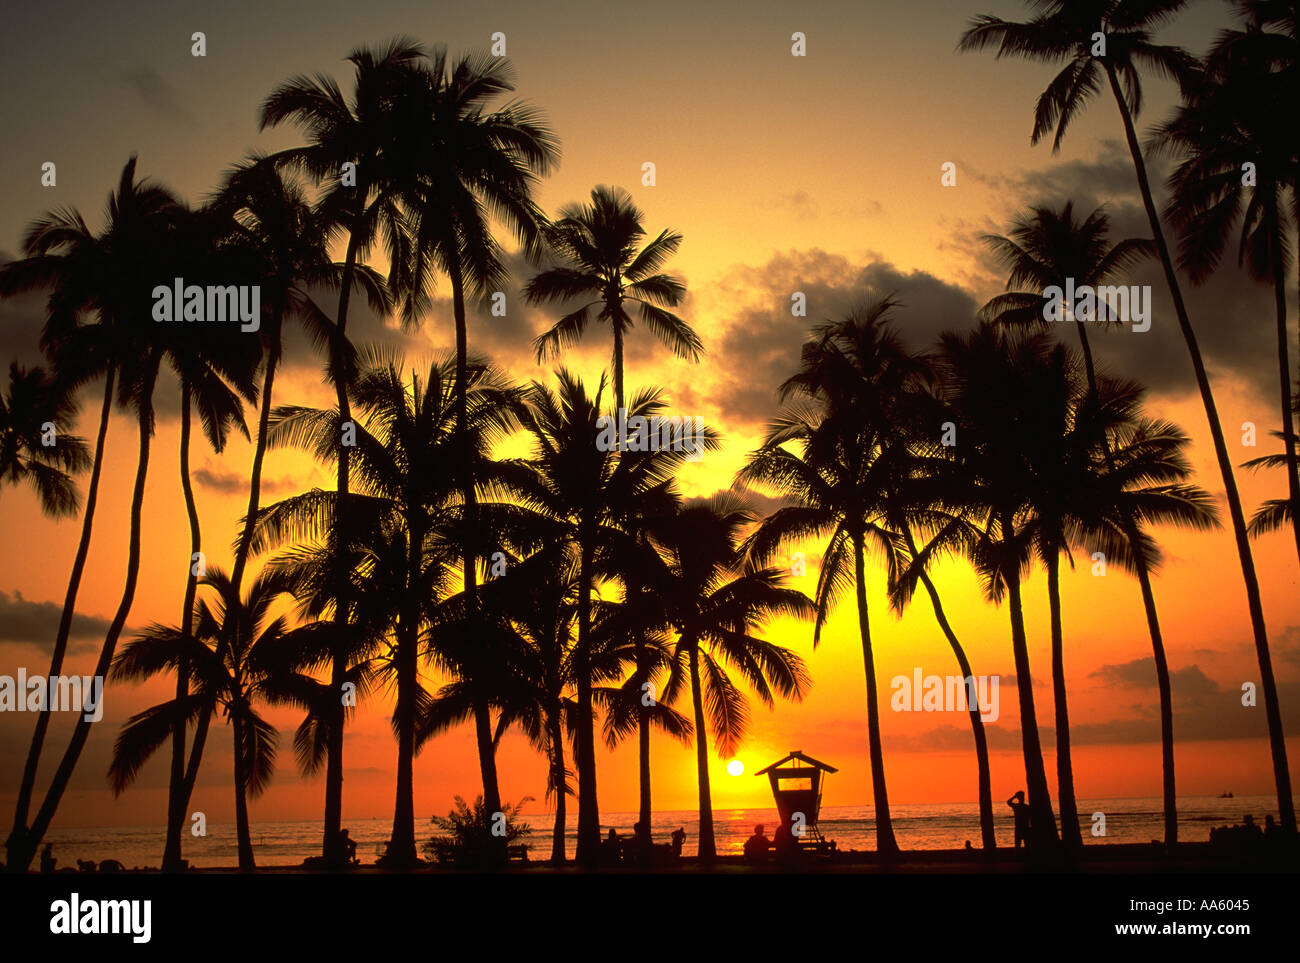 Coucher de Soleil Plage de Waikiki Waikiki, Oahu Hawaii USA Photo Stock